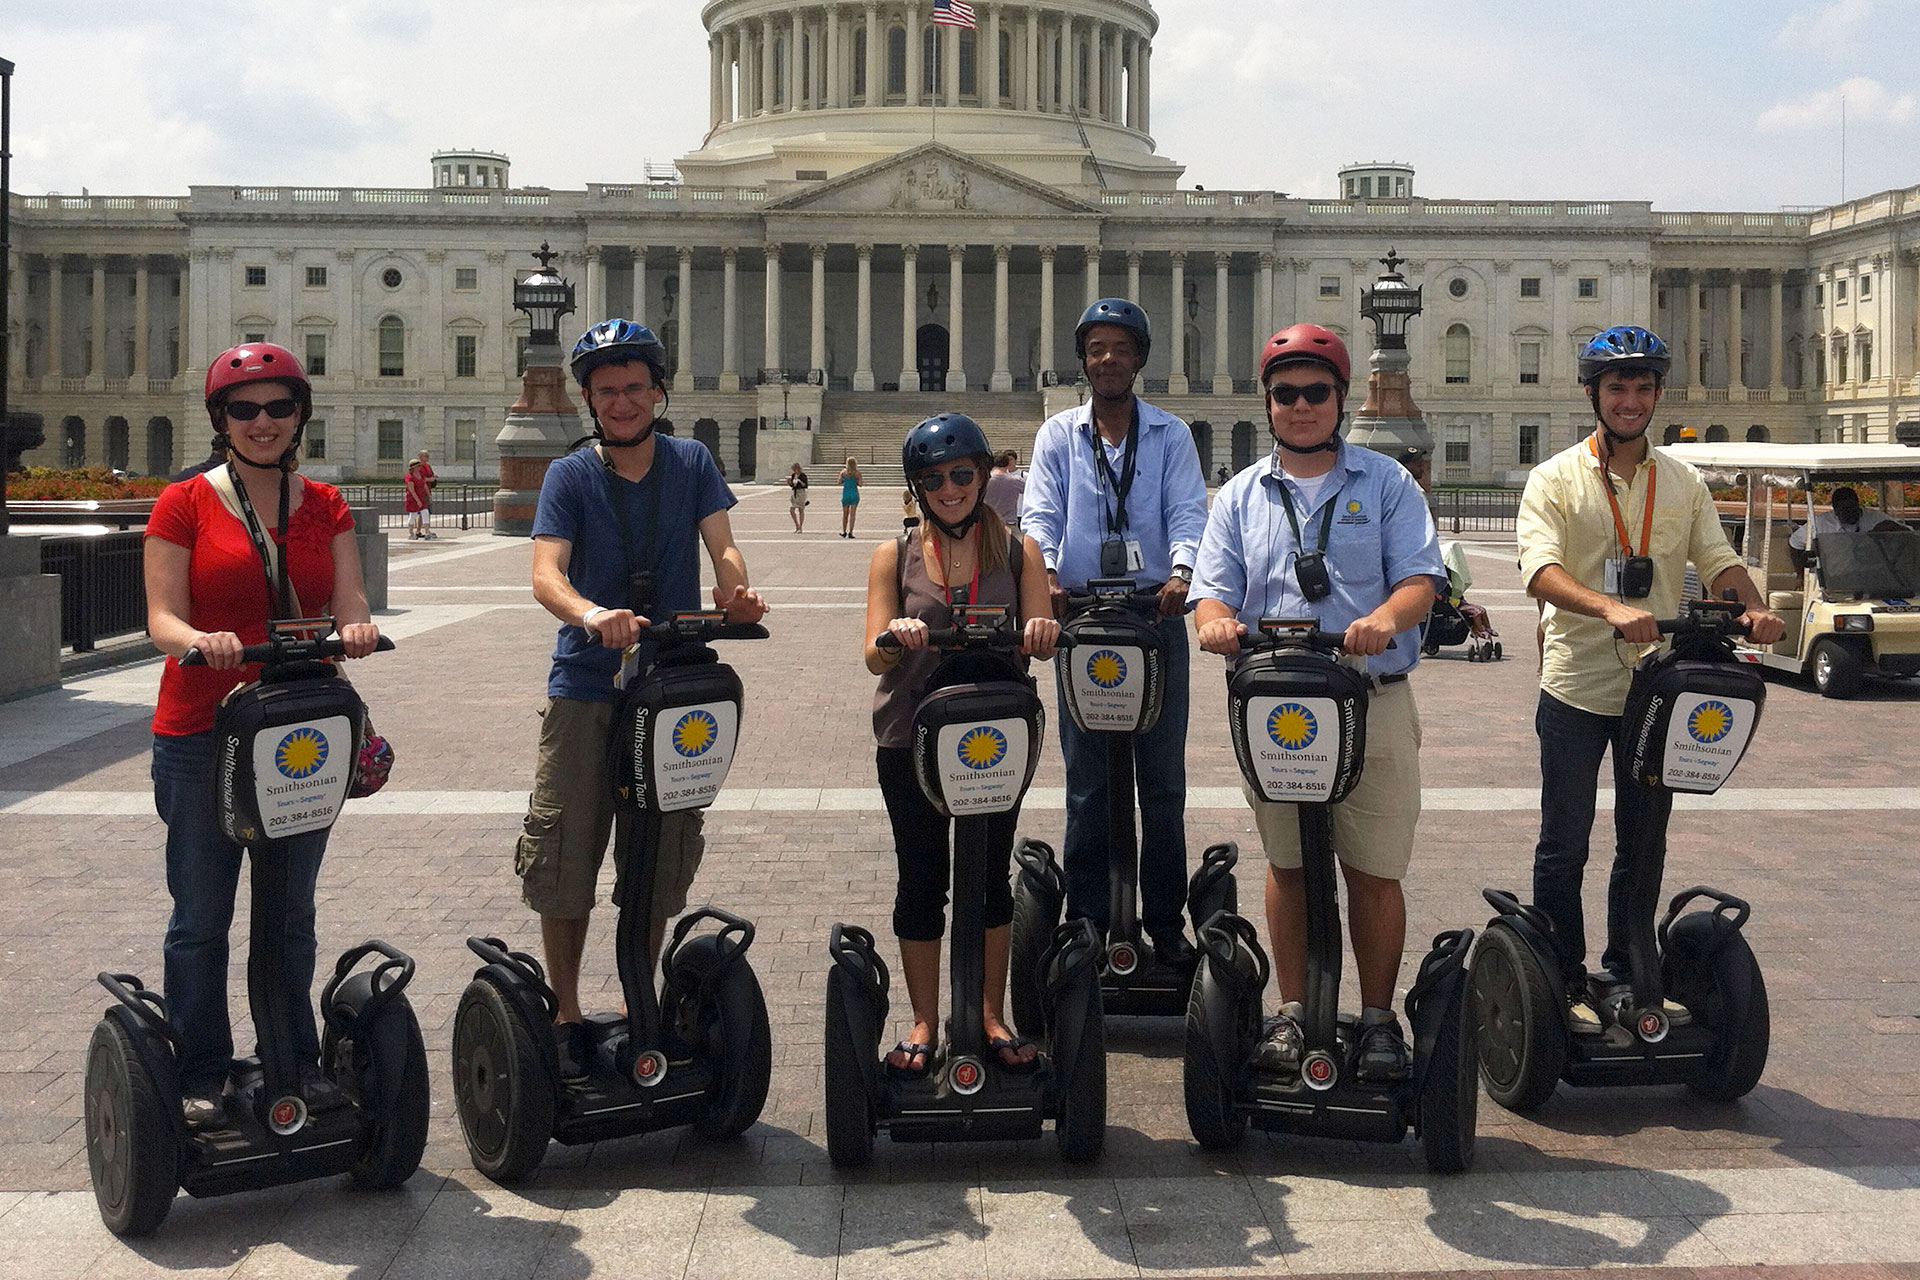 OFMR interns out for a ride on segways